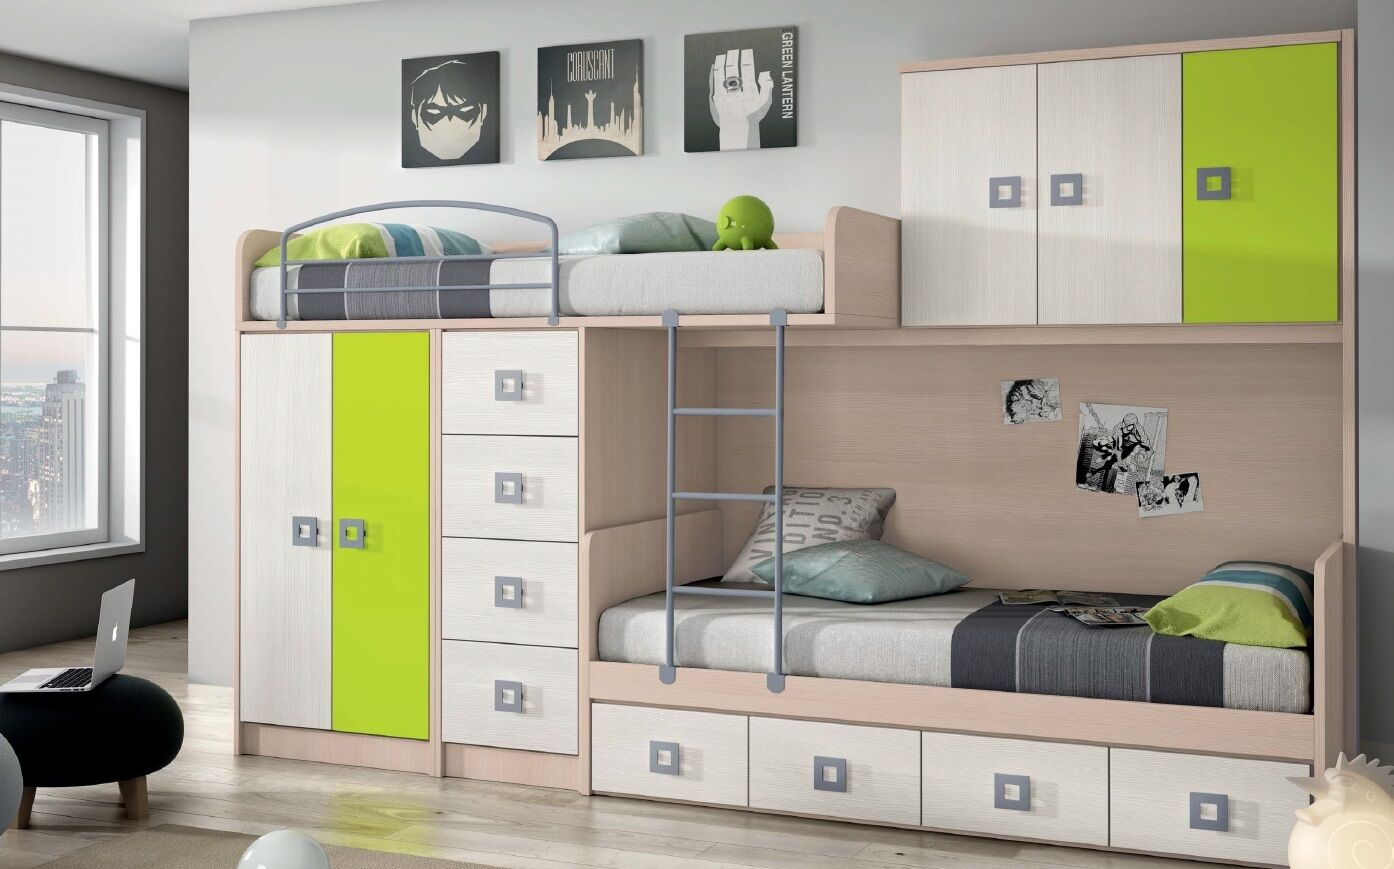 design kinderzimmer mit hochbett stockbett kleiderschrank individuell bunt eur. Black Bedroom Furniture Sets. Home Design Ideas